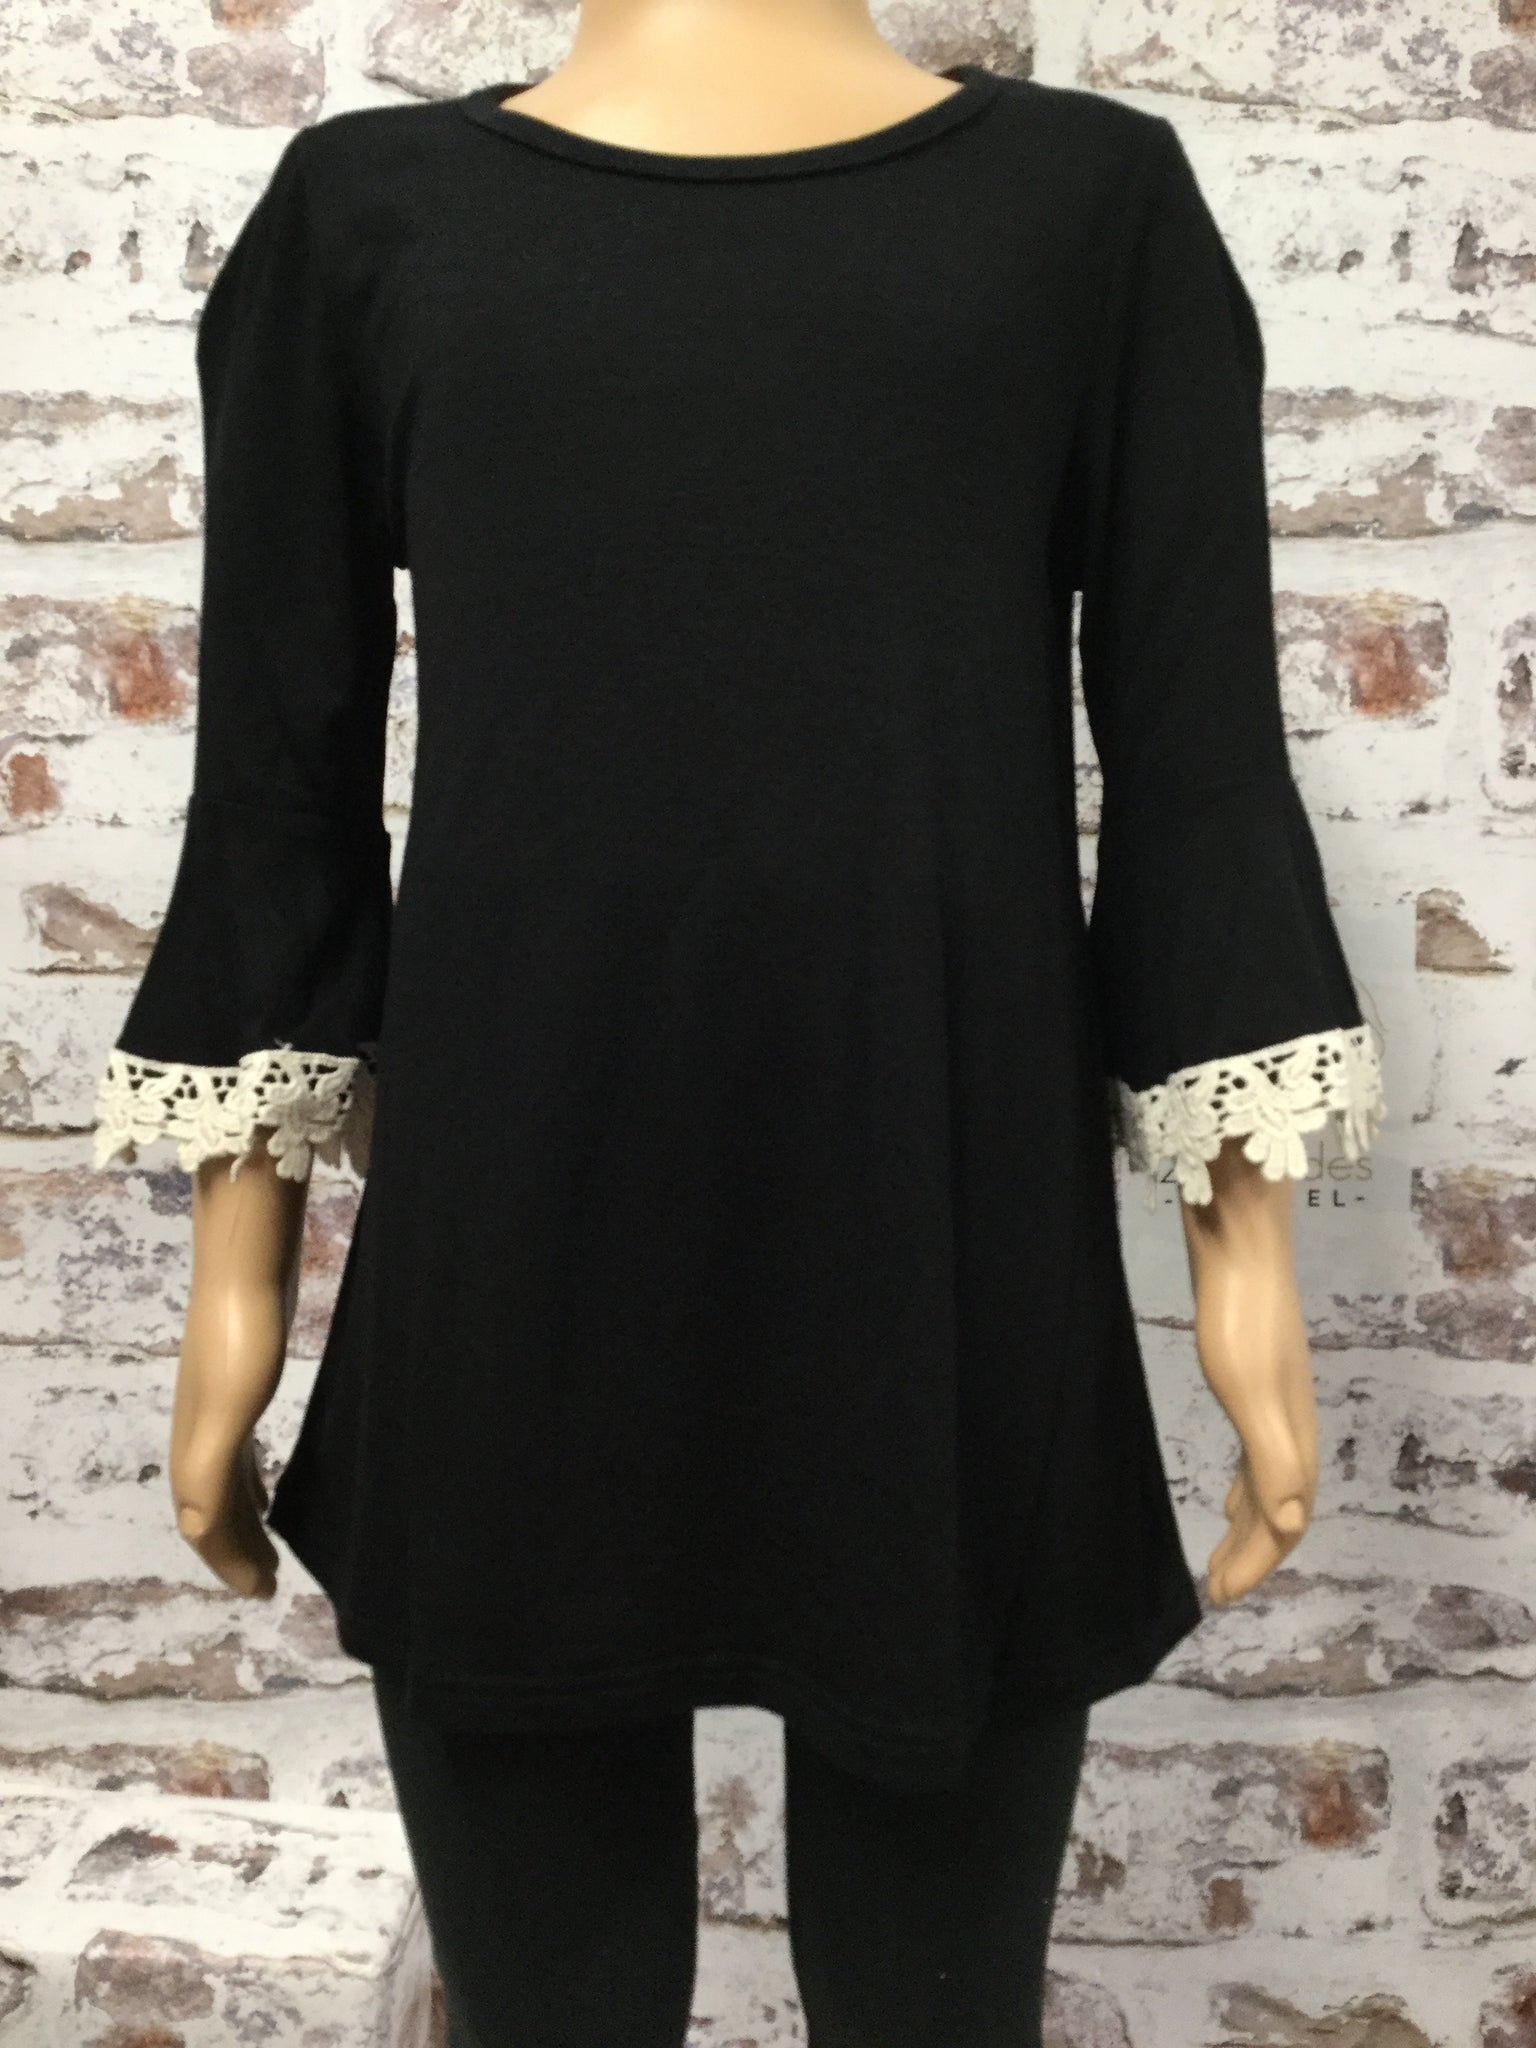 Girls 3/4 Length Crocheted Lace Sleeve Top